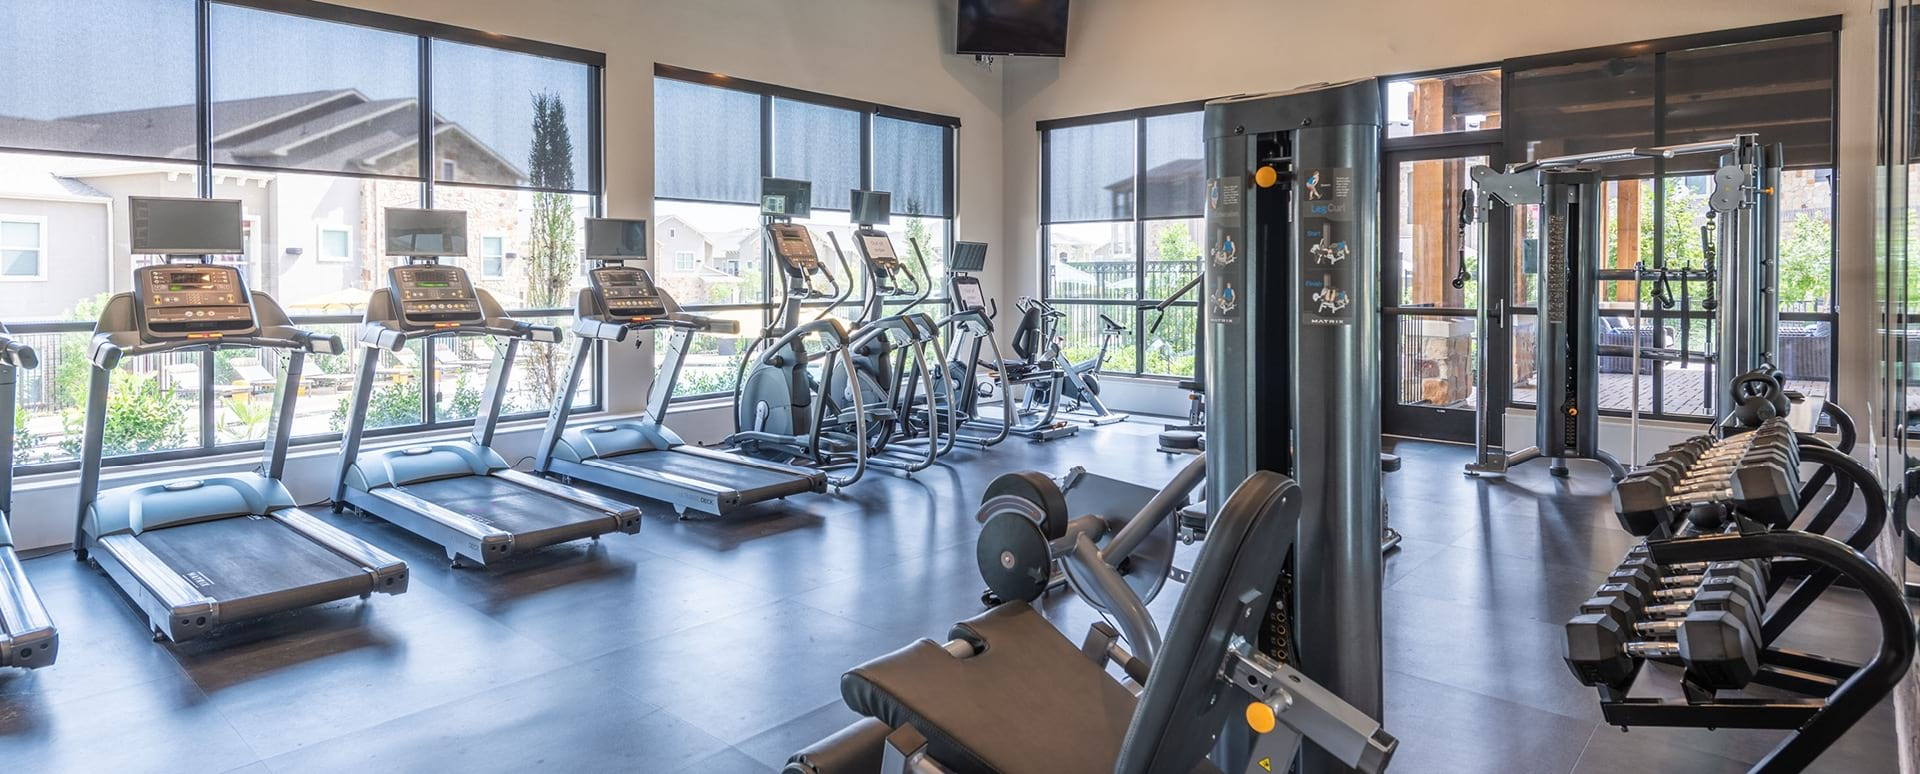 Fitness center at luxury apartments in Frisco, TX